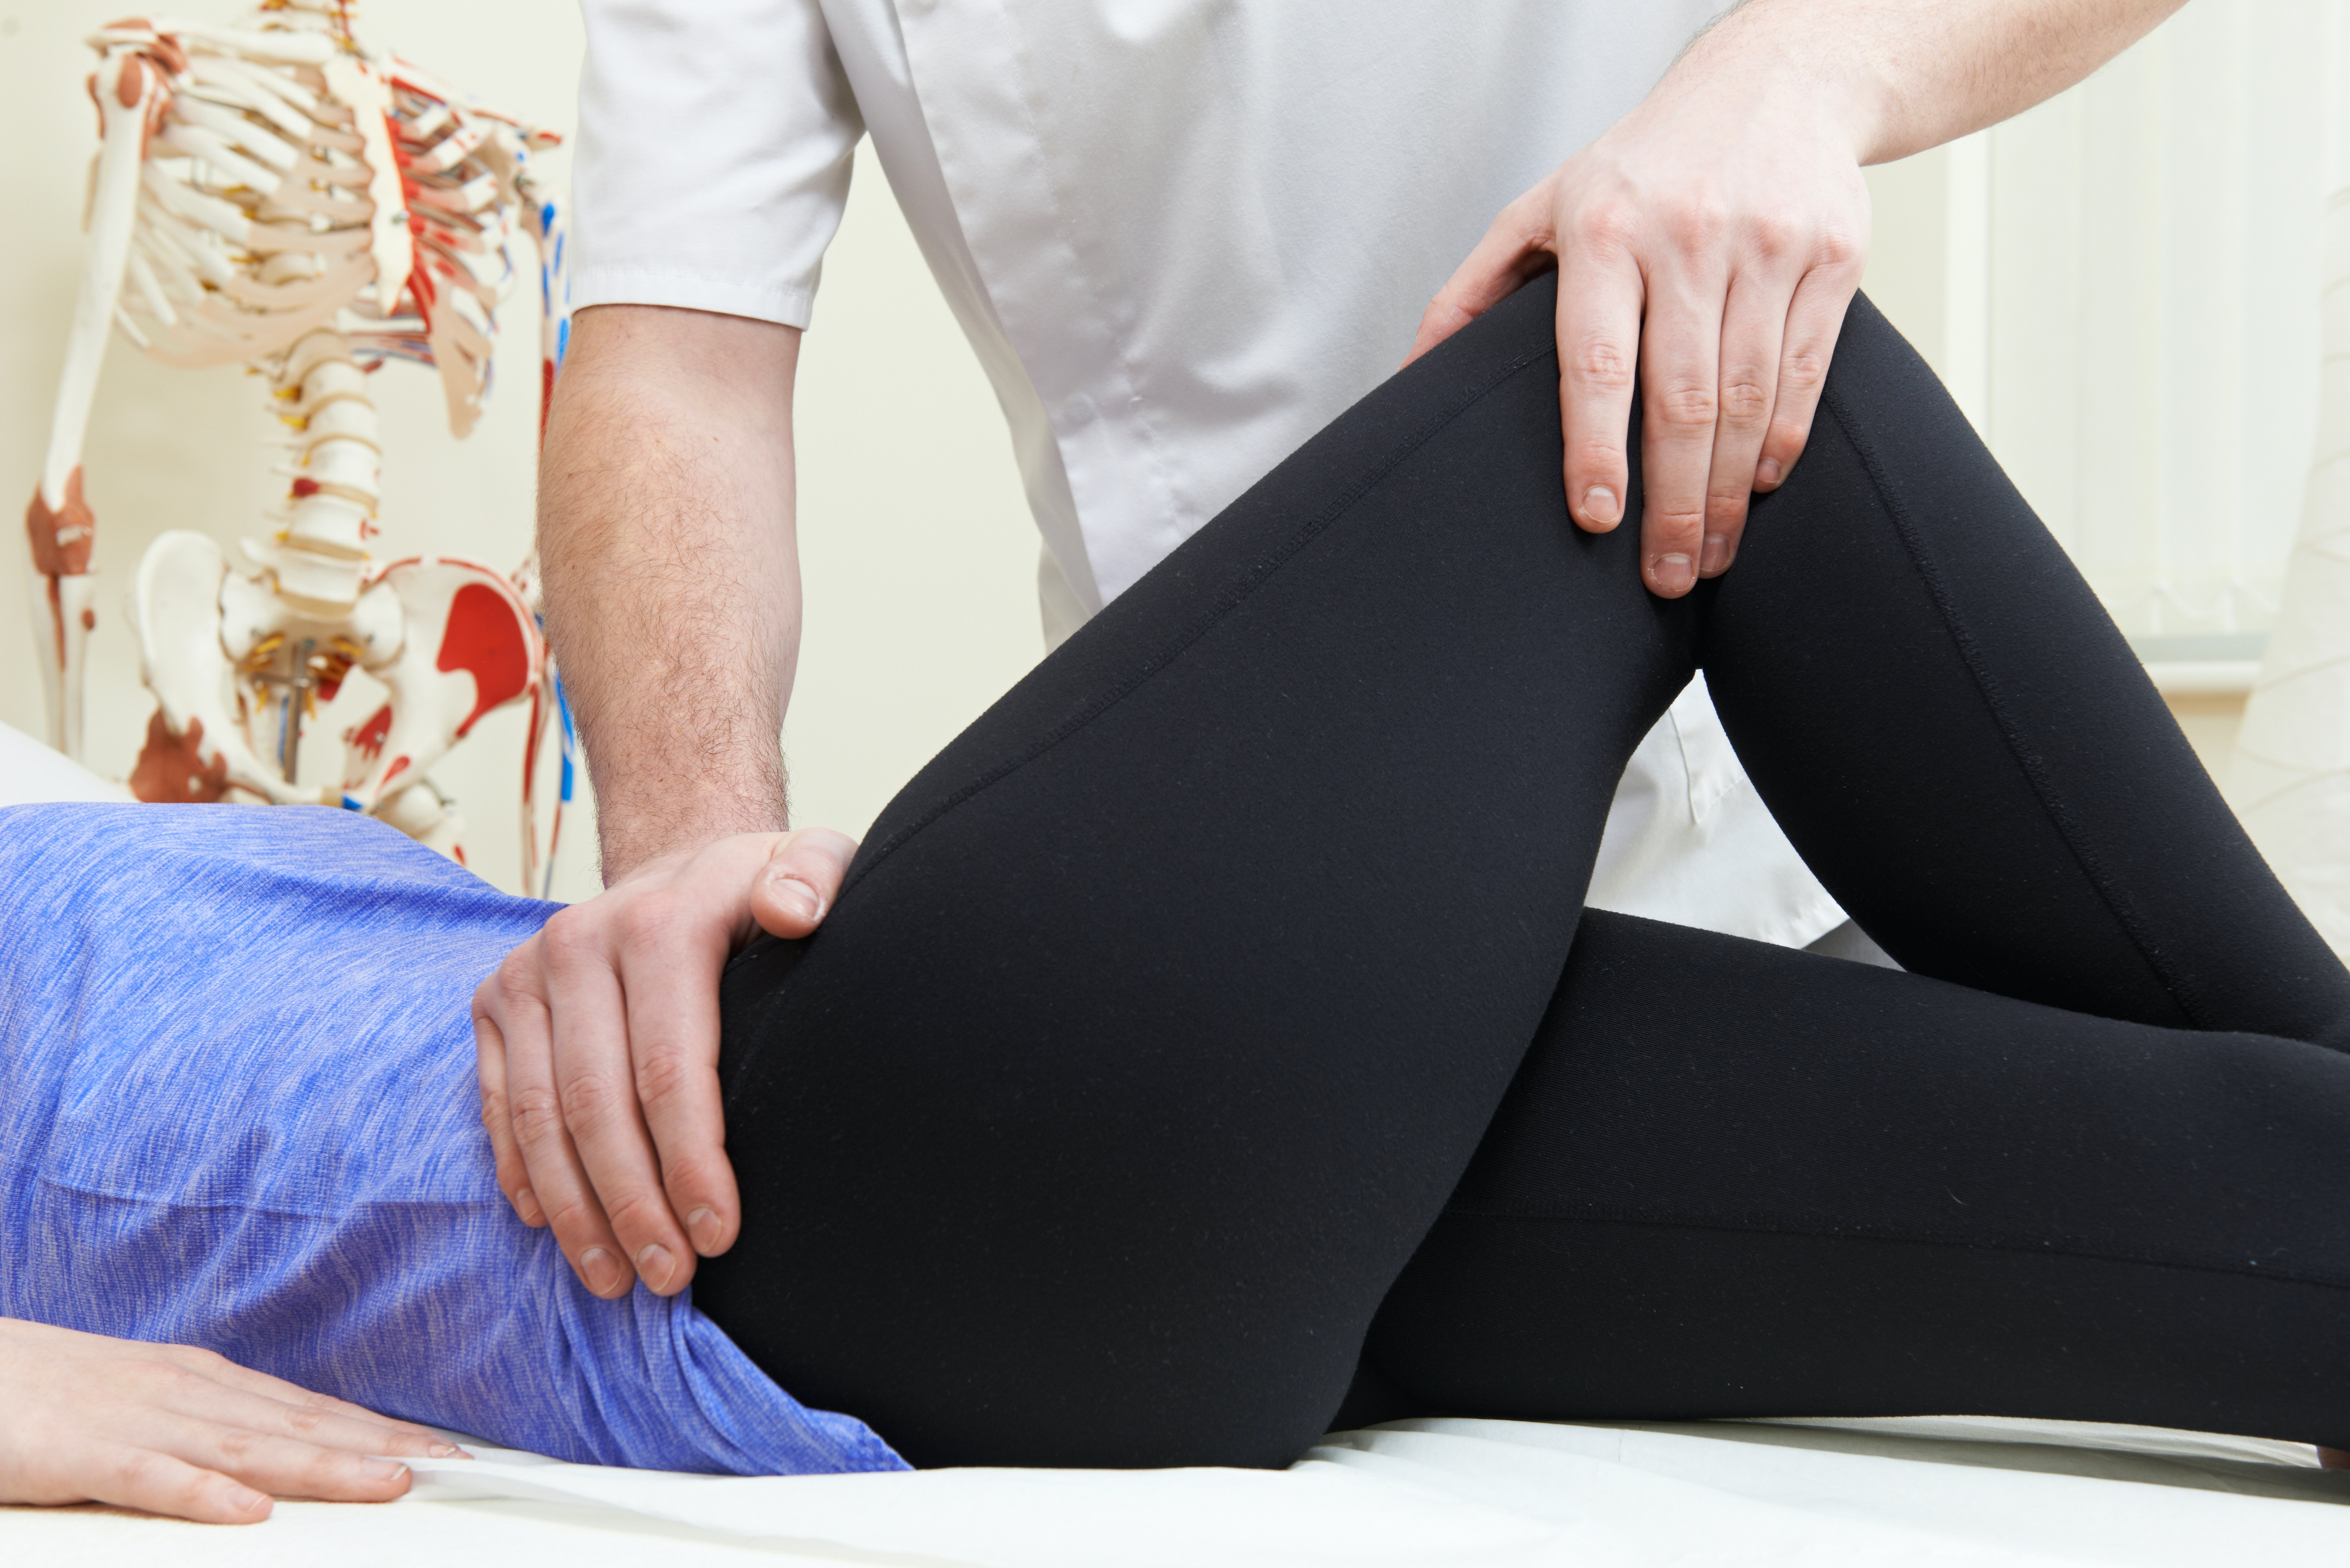 An image depicting a person suffering from pain in one hip symptoms